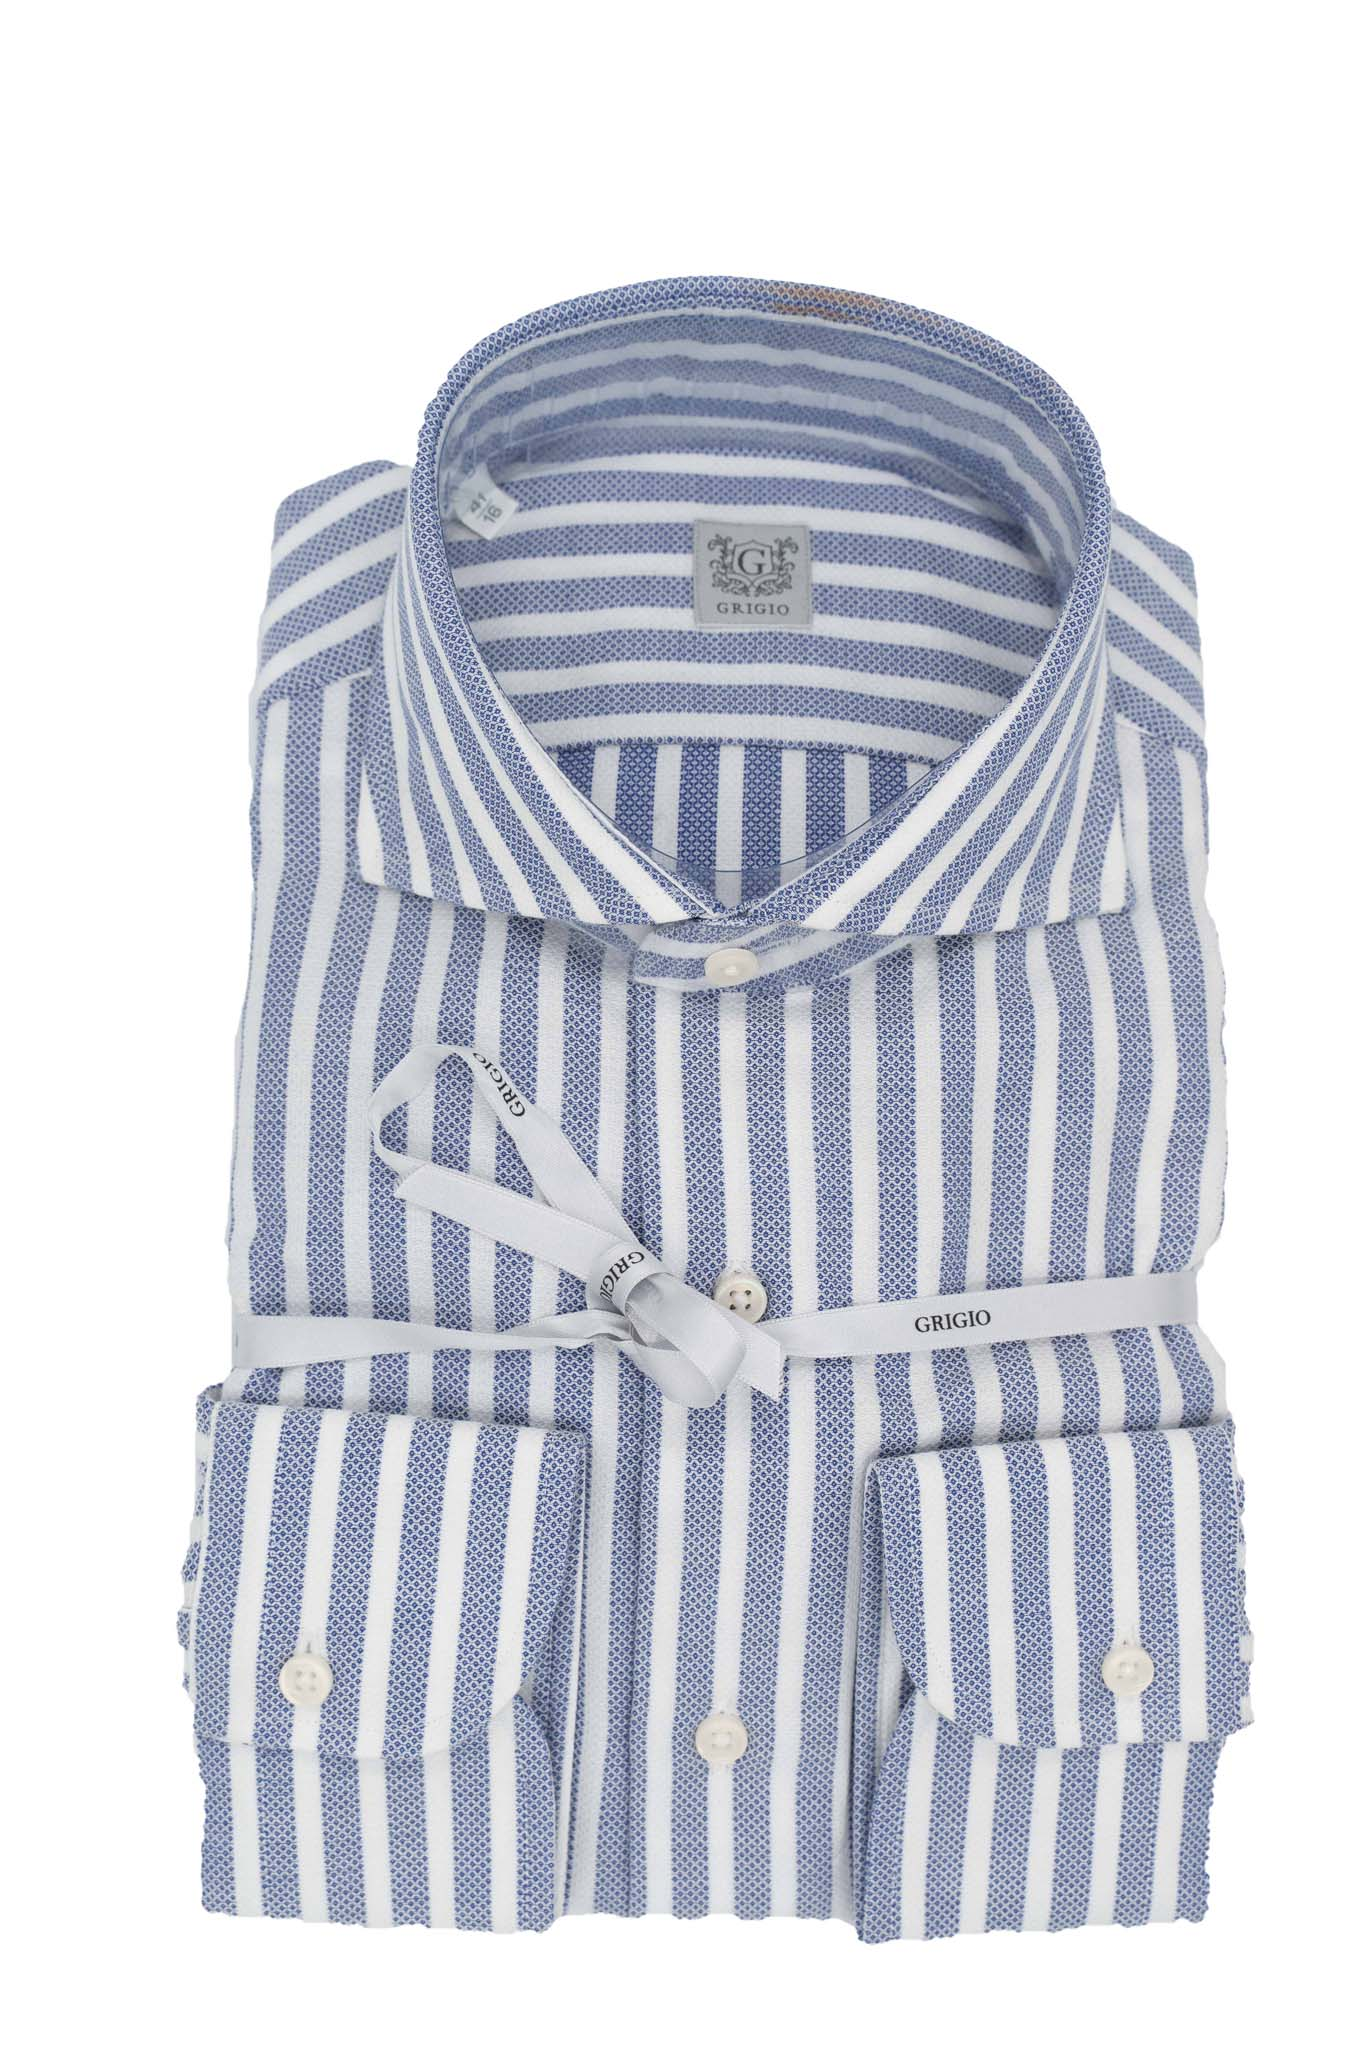 Cotton blue & white stripe shirt